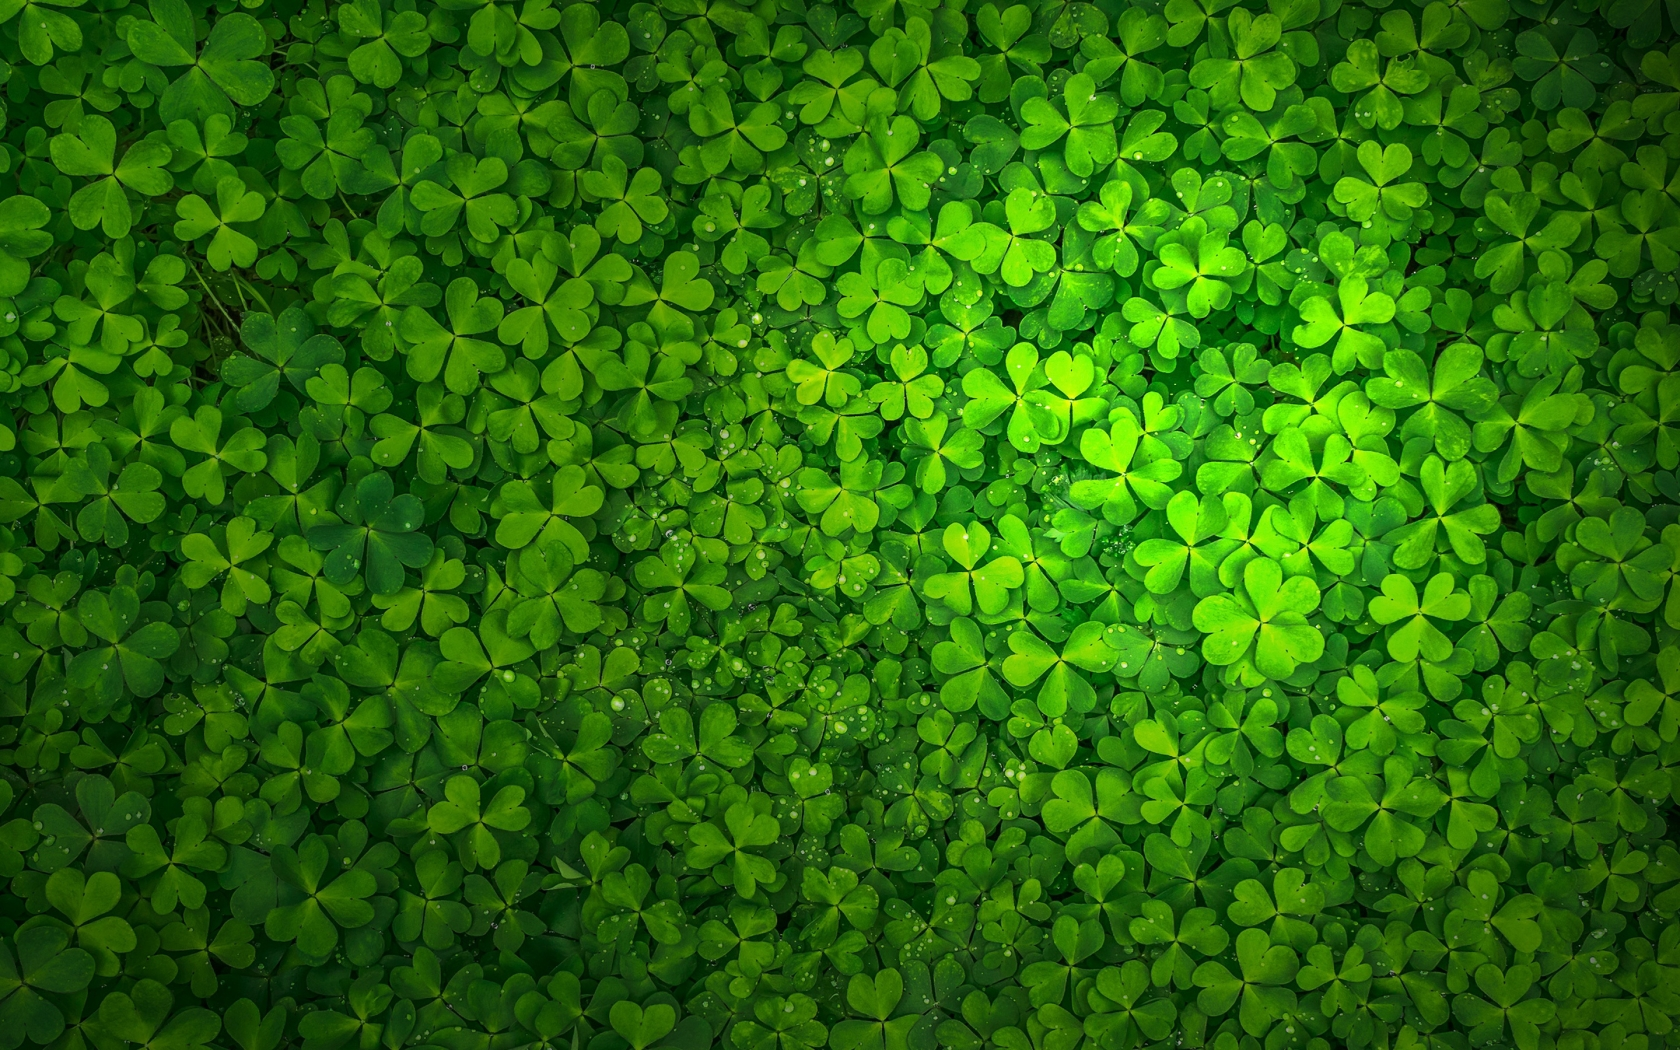 St Patrick's Day for 1680 x 1050 widescreen resolution